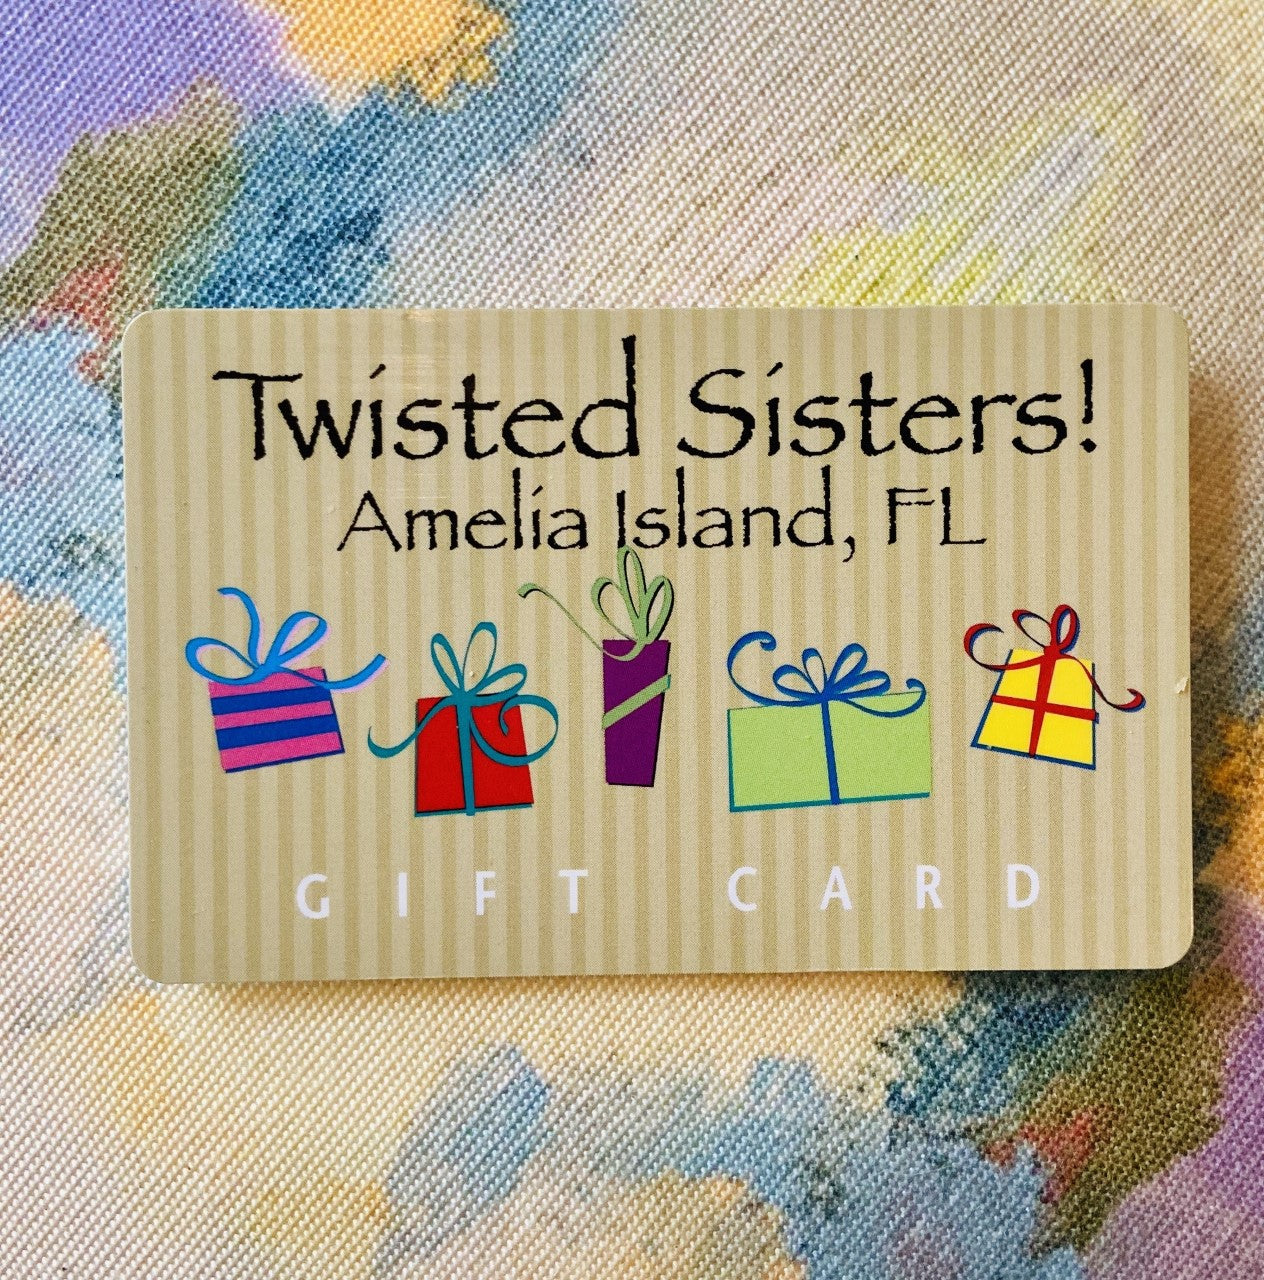 Gift Card | Twisted Sisters!